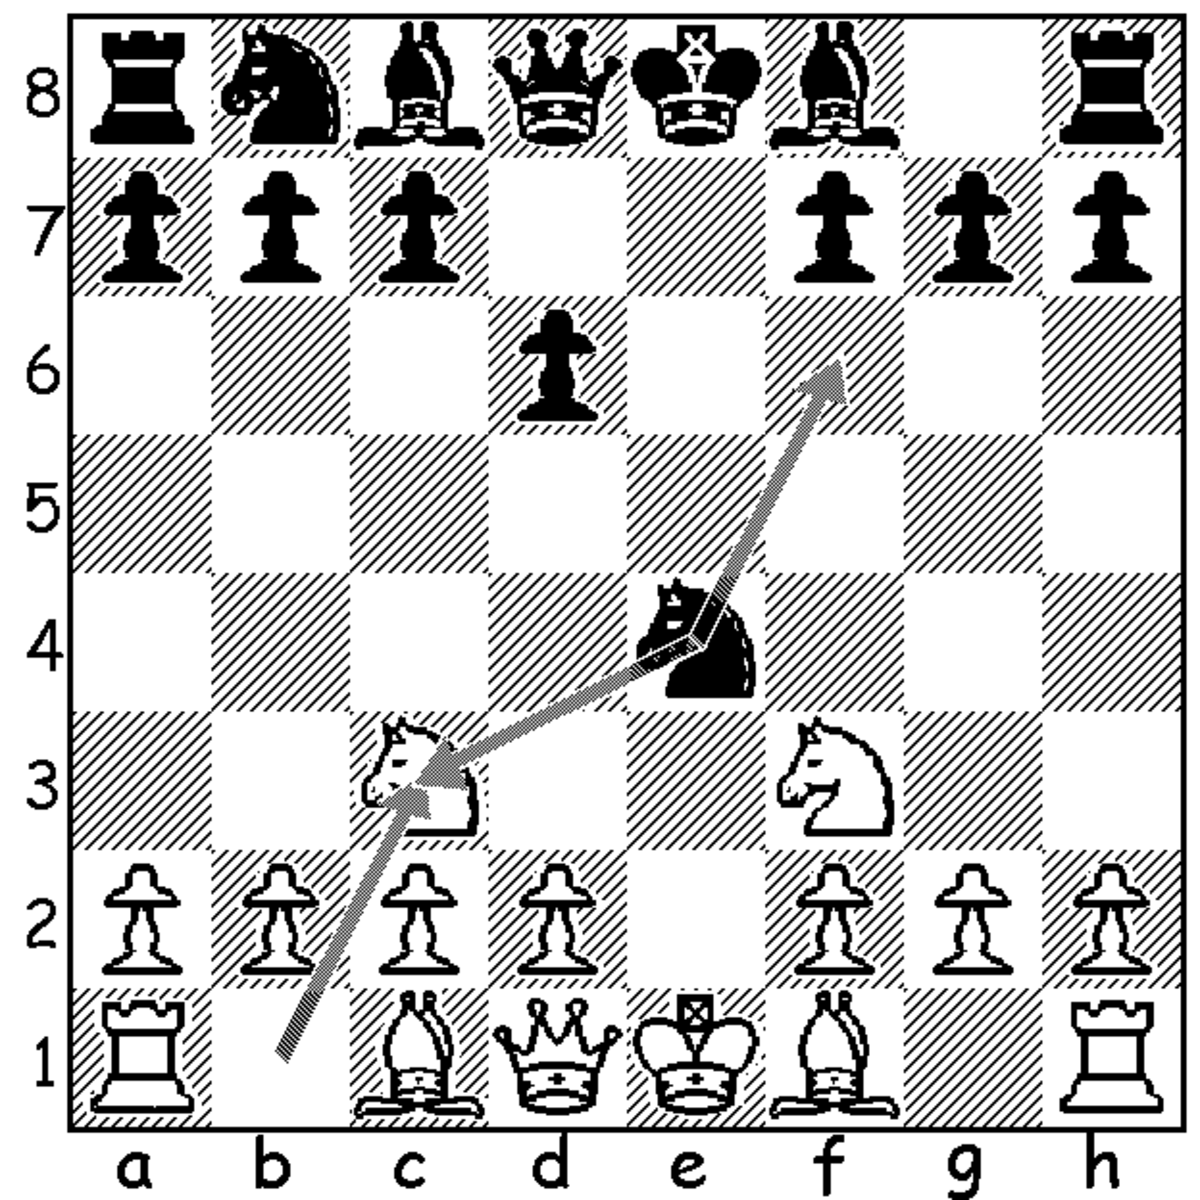 Chess Openings: An Exciting Line for White Against Petrov's Defense: The Nimzovich Attack